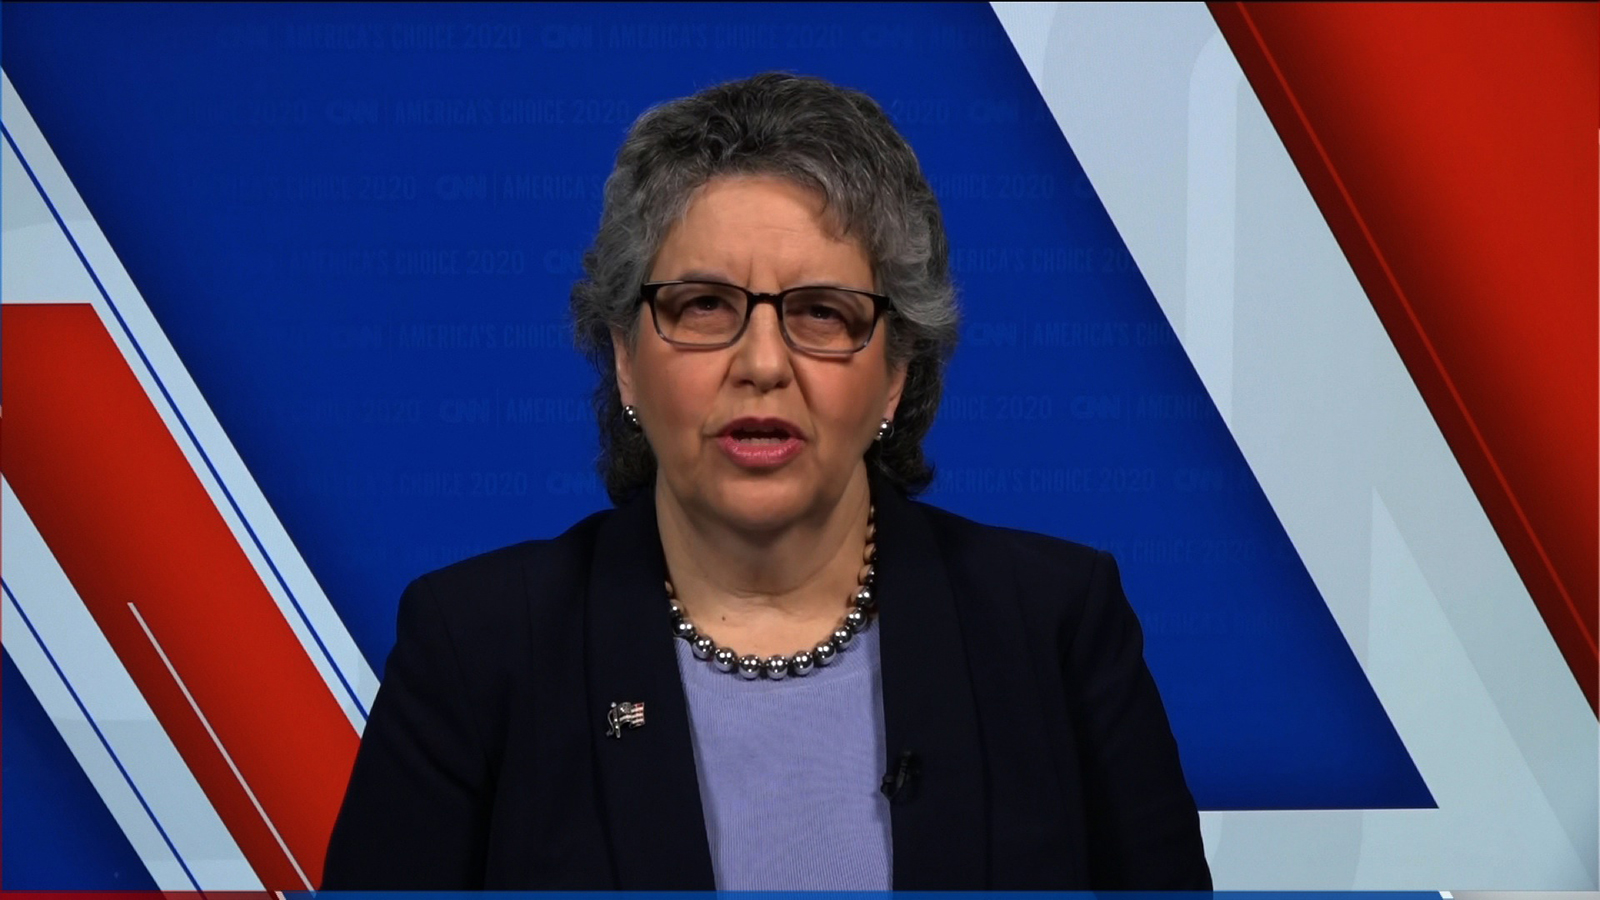 Commissioner of the Federal Election Commission, Ellen Weintraub